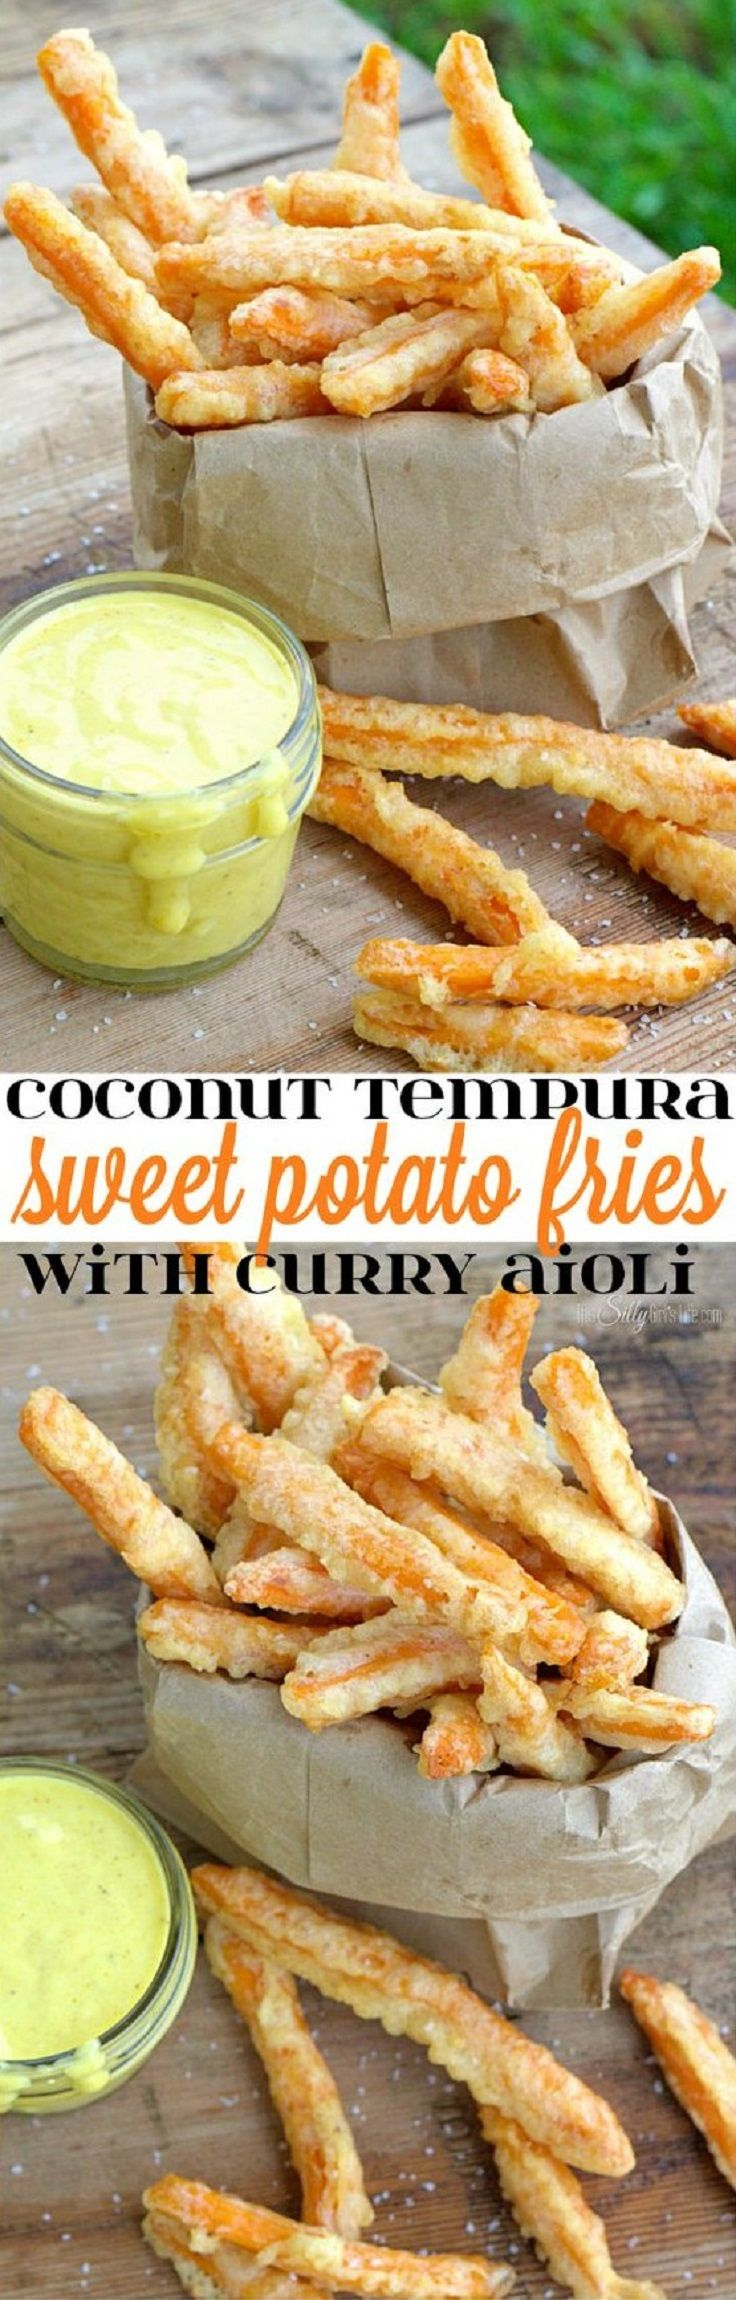 Coconut Tempura Sweet Potato Fries with Curry Aioli - 14 Beautifully Executed Sweet Potato Fries